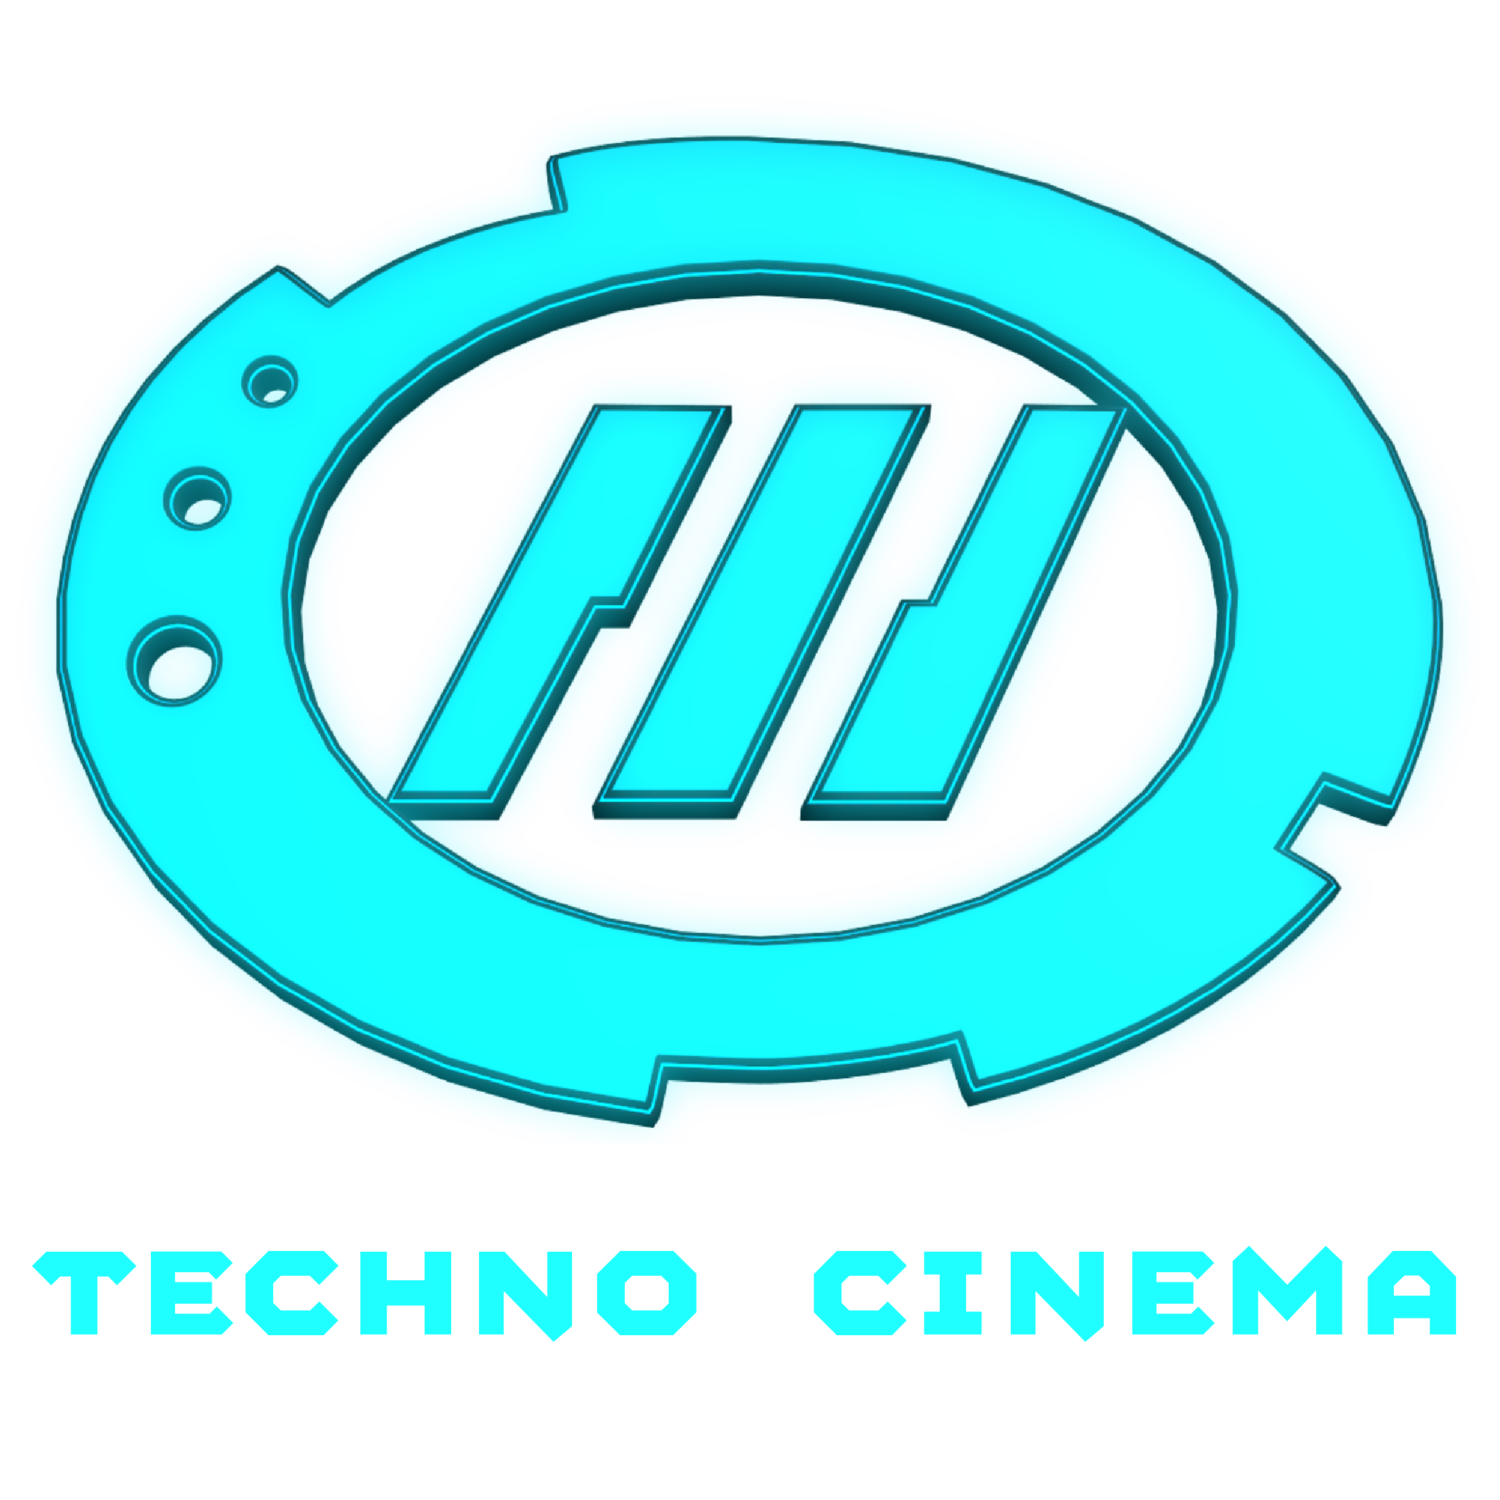 Techno Cinema: Music by Danny Burns